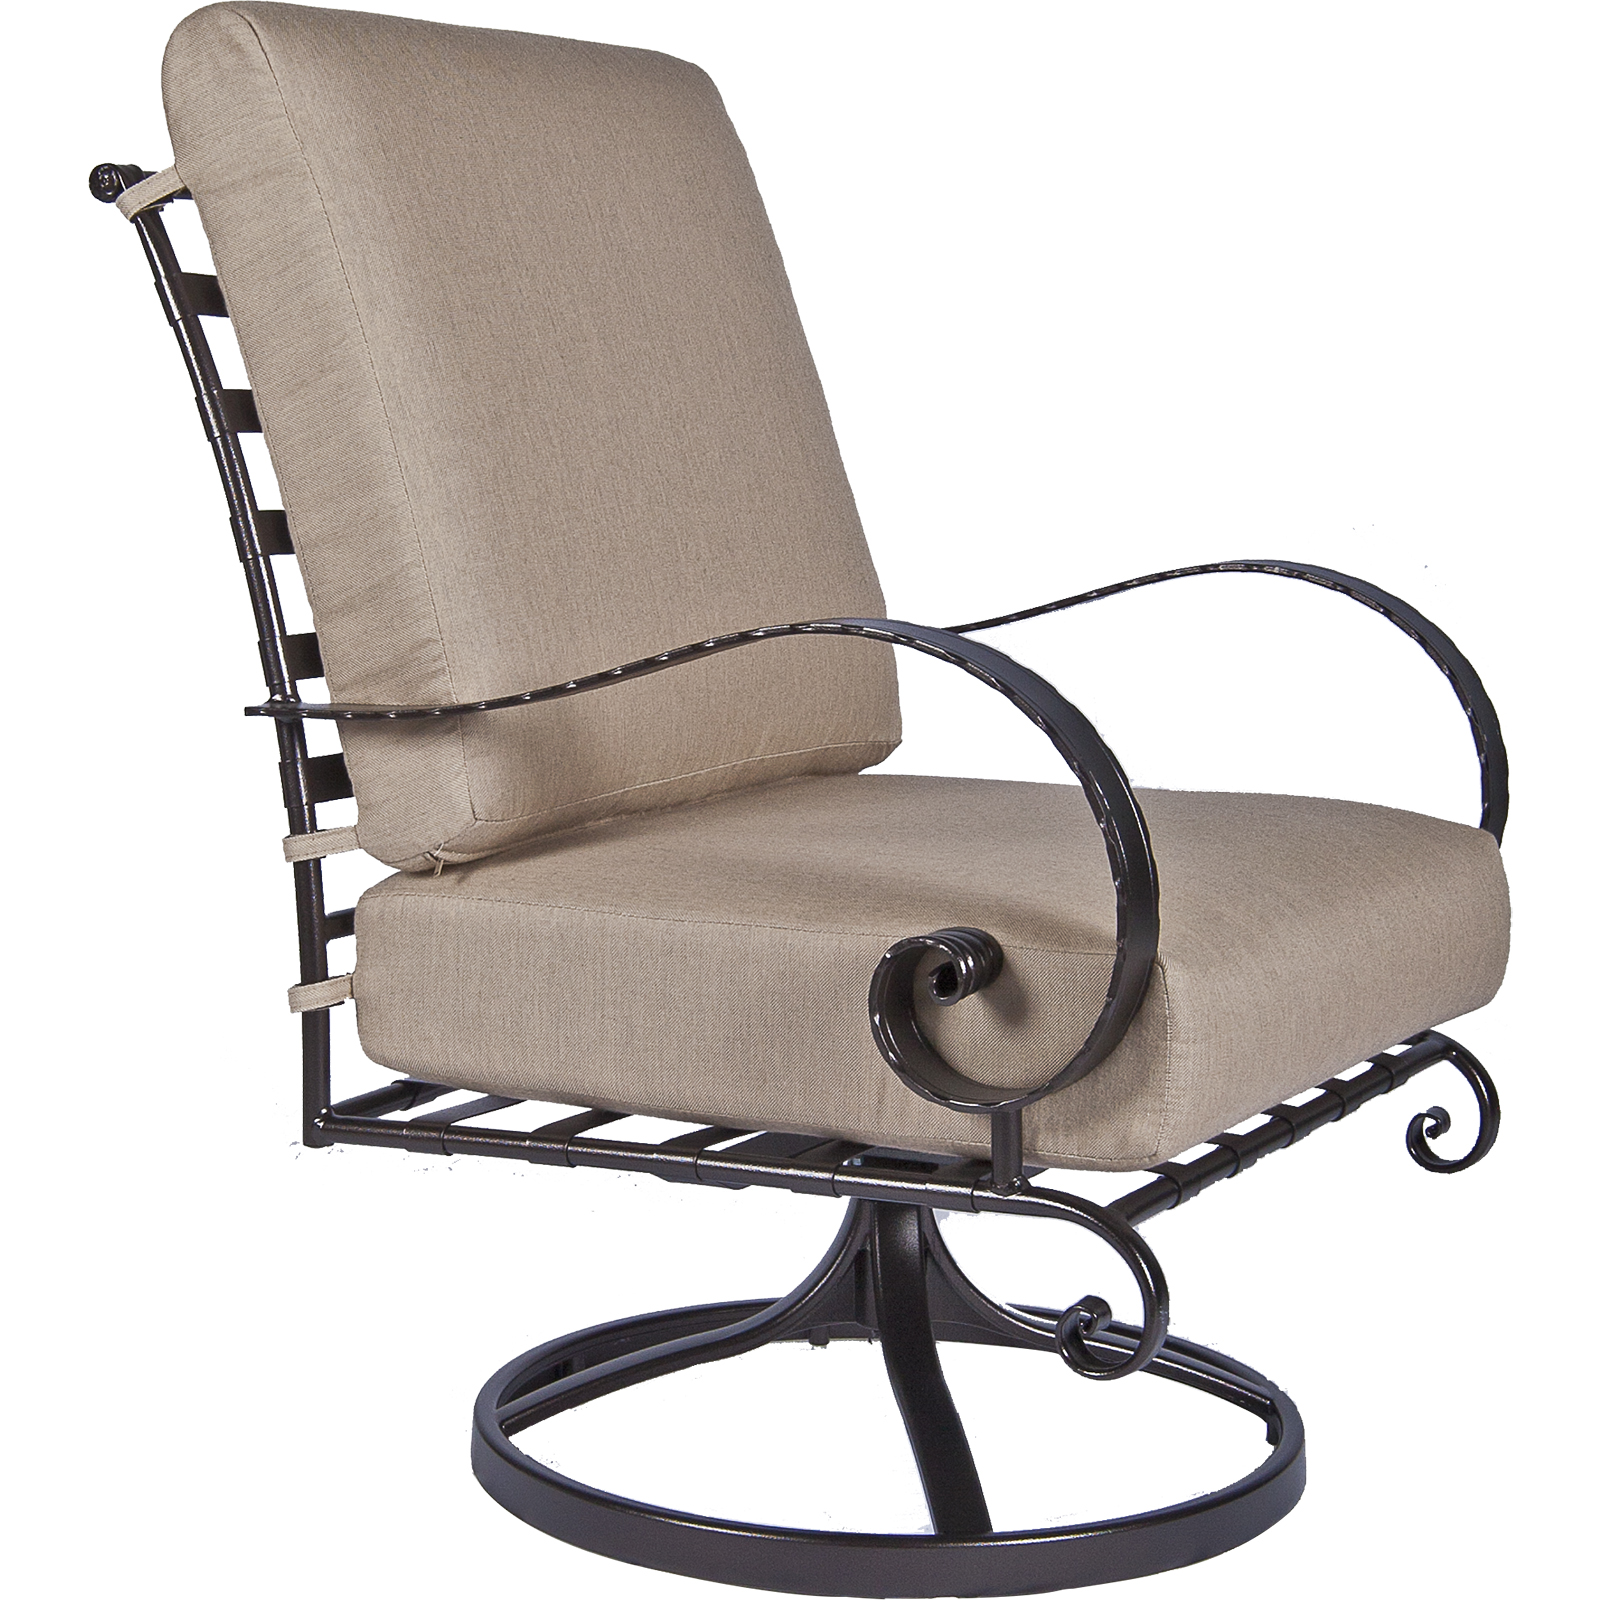 Swivel-Rocker-Lounge-Chair-956-SRW_Catalog_GR35_1600-Classico-W-OW-Lee